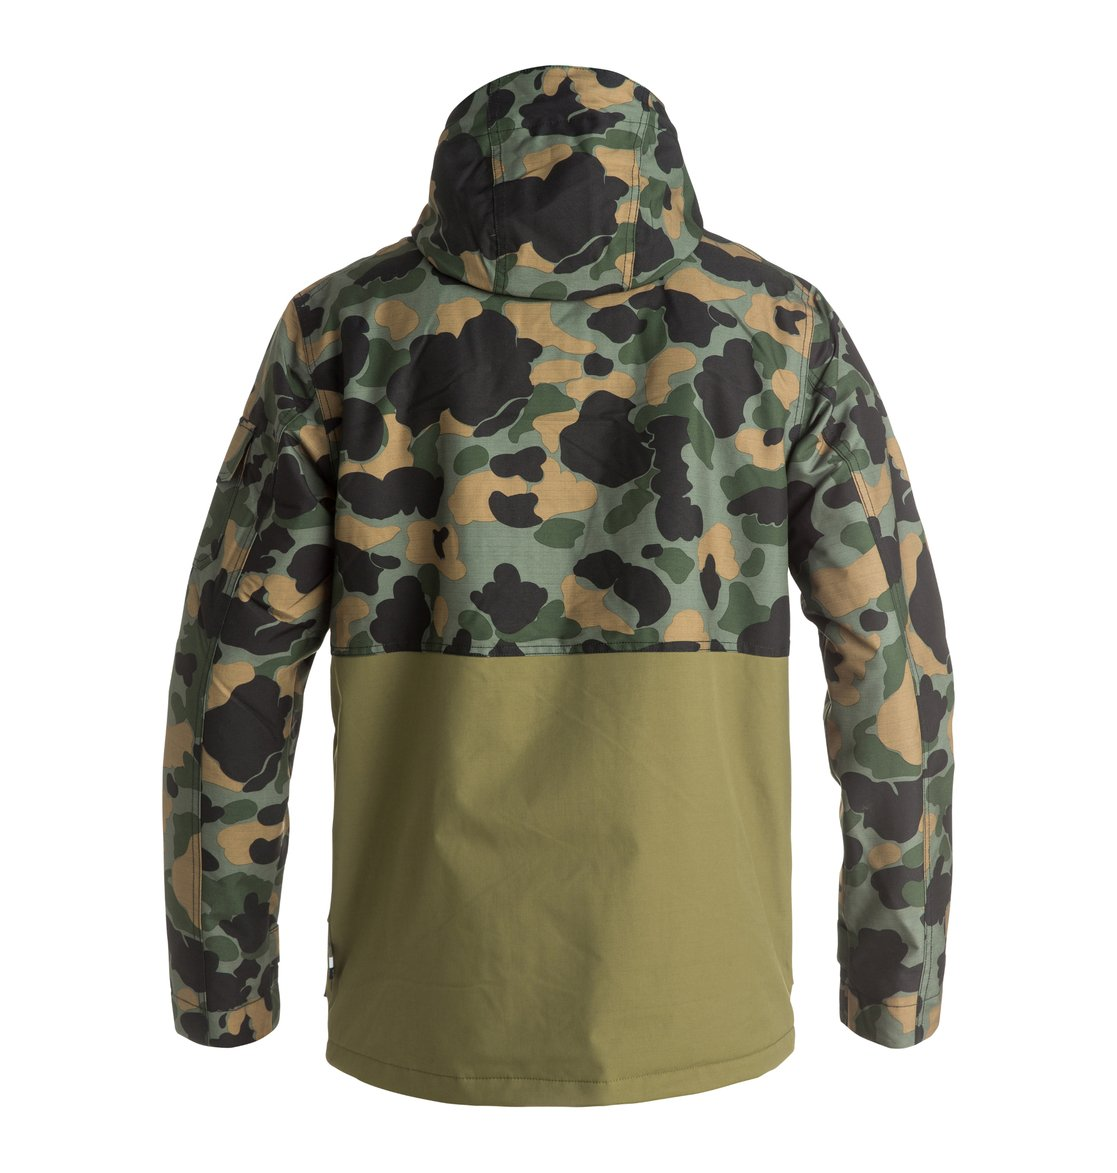 d1a31e11ac6ab Cheap under armour mossy oak duck blind hoodie Buy Online >OFF72 ...